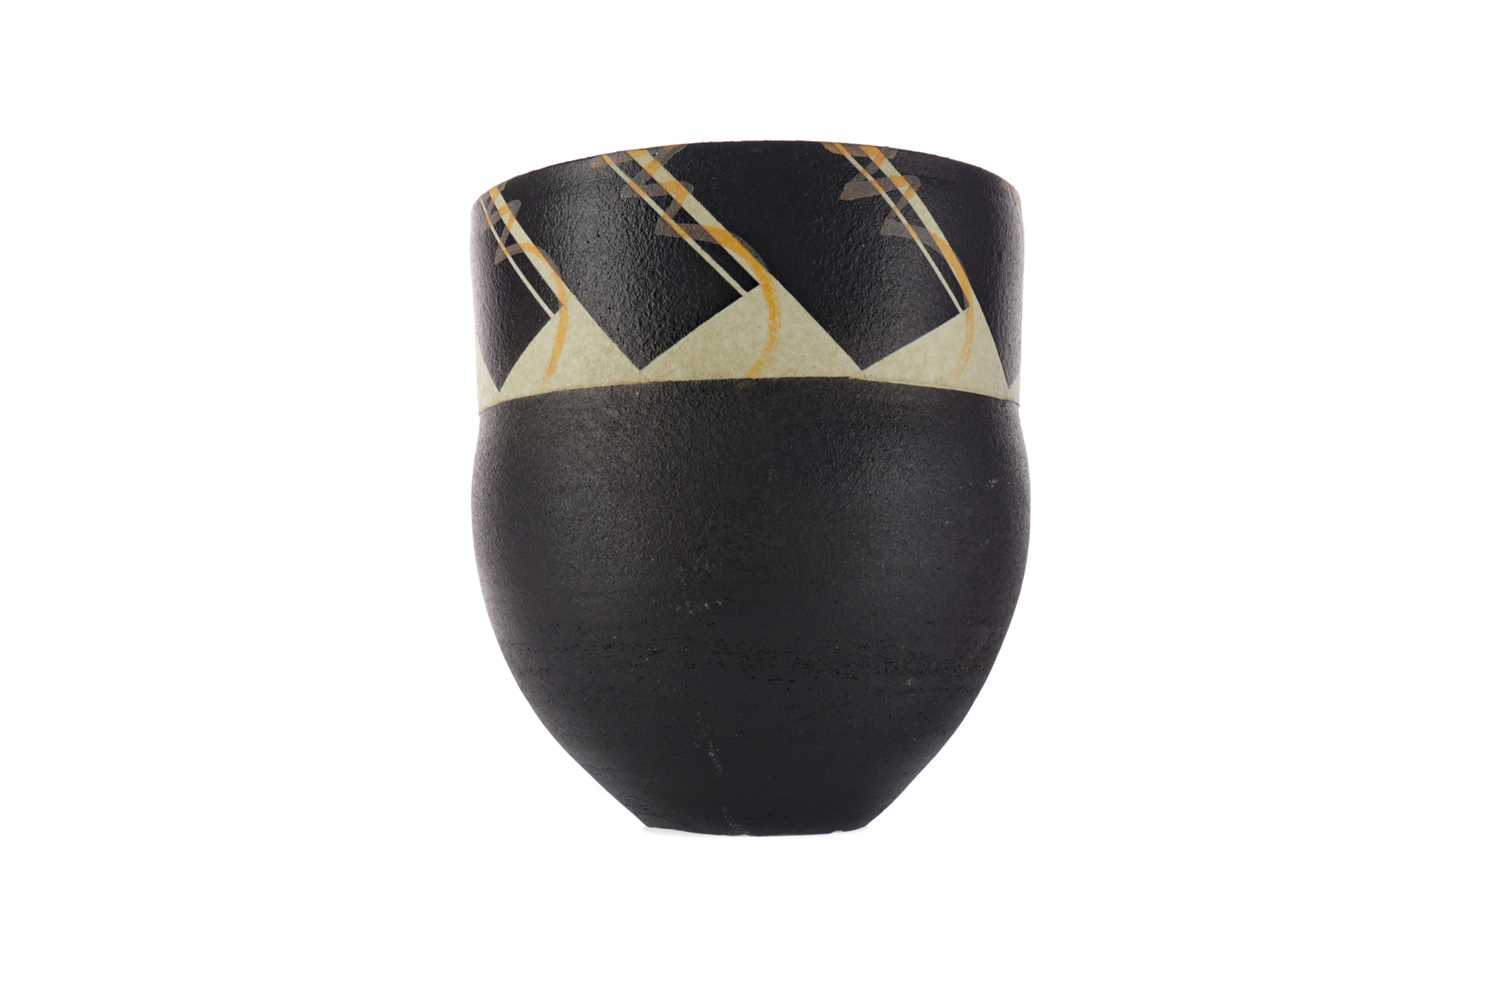 Lot 1063 - A STUDIO POTTERY VASE BY MORAY MILLER